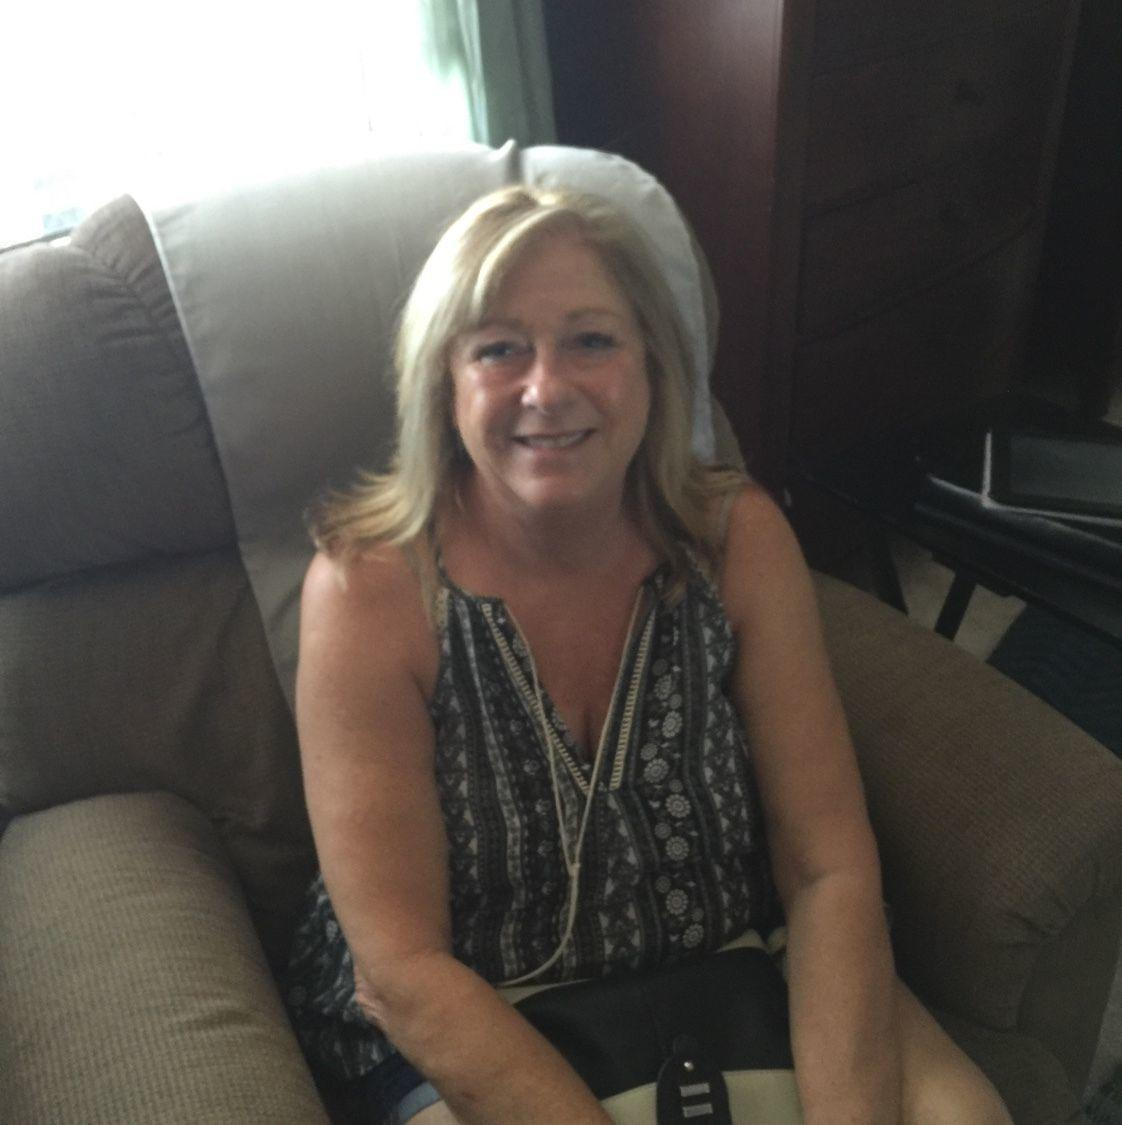 encinitas senior singles The it's just lunch difference: personalized matchmaking high touch service guaranteed dates our dating experts provide an enjoyable alternative to online dating websites.